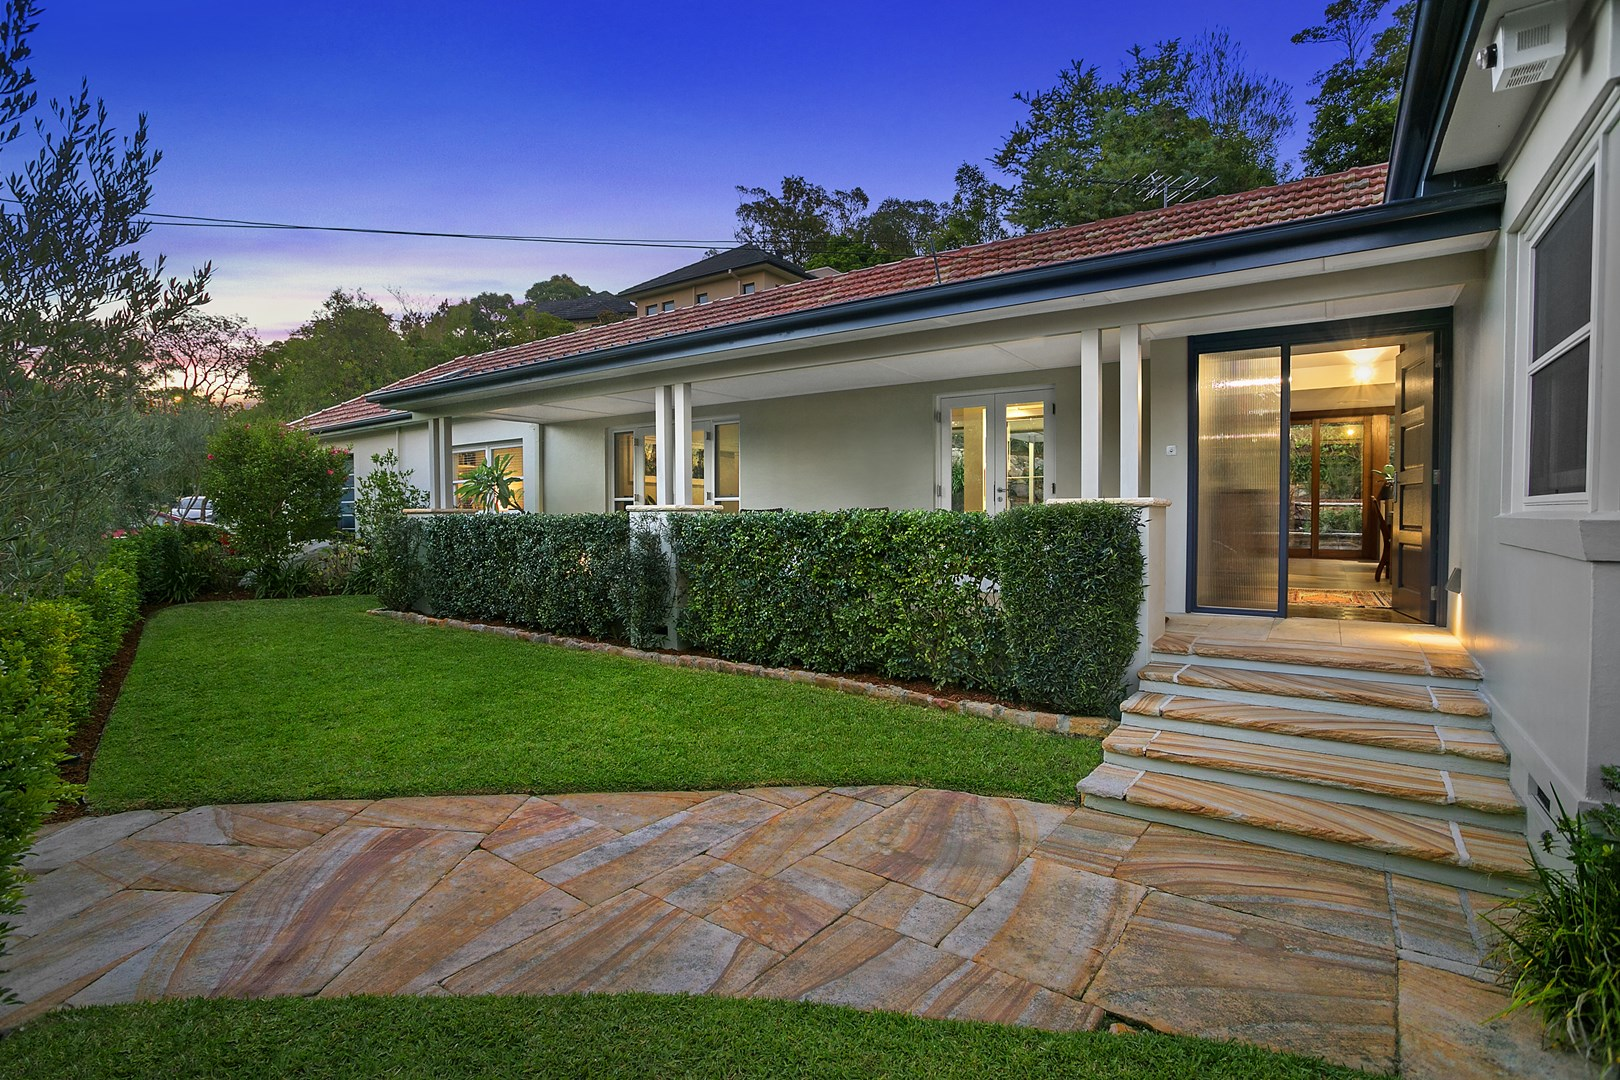 19 sugarloaf crescent castlecrag nsw 2068 house for for Single level home designs nsw